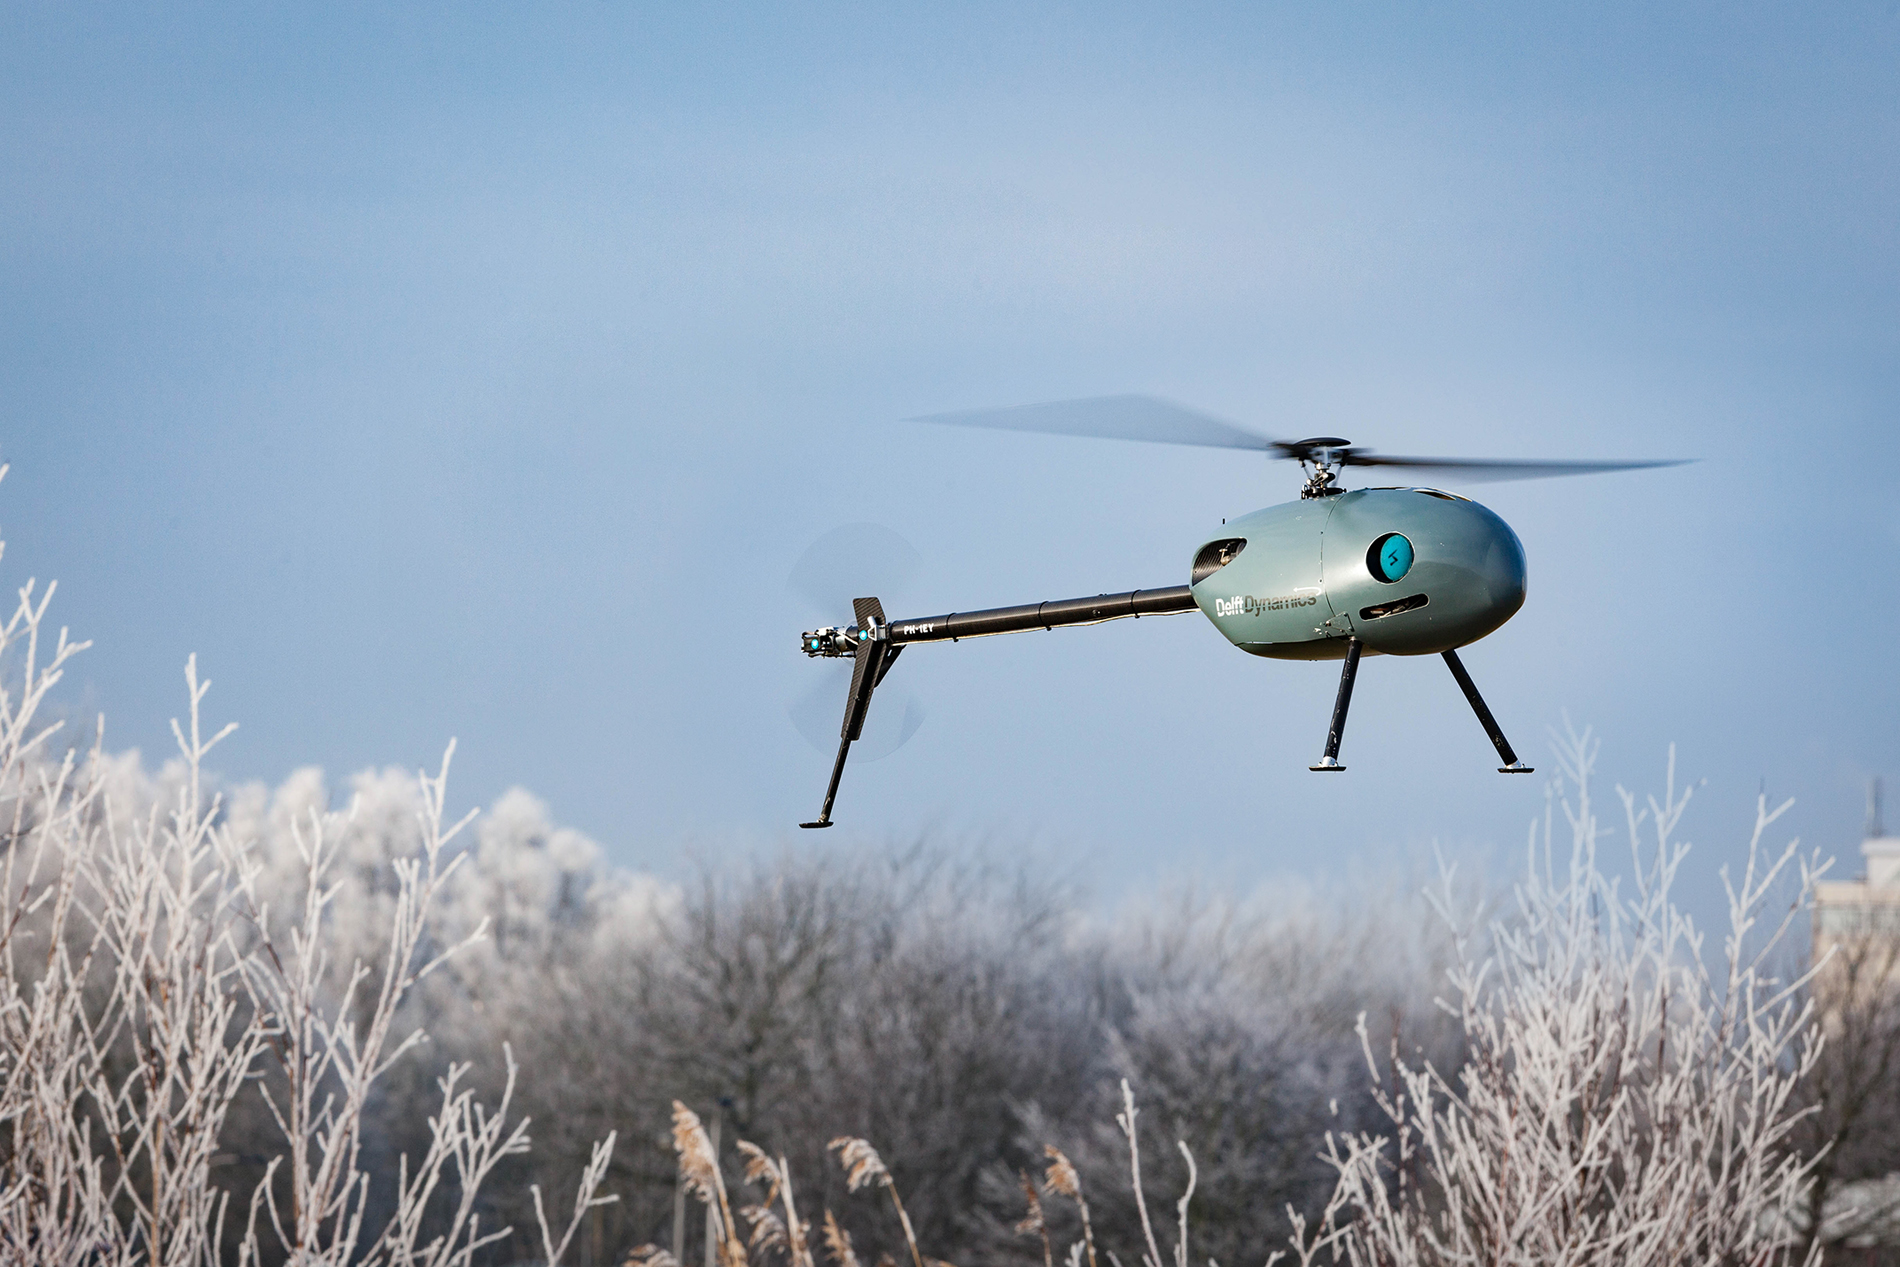 NLR contributes to research into unmanned helicopter-ship